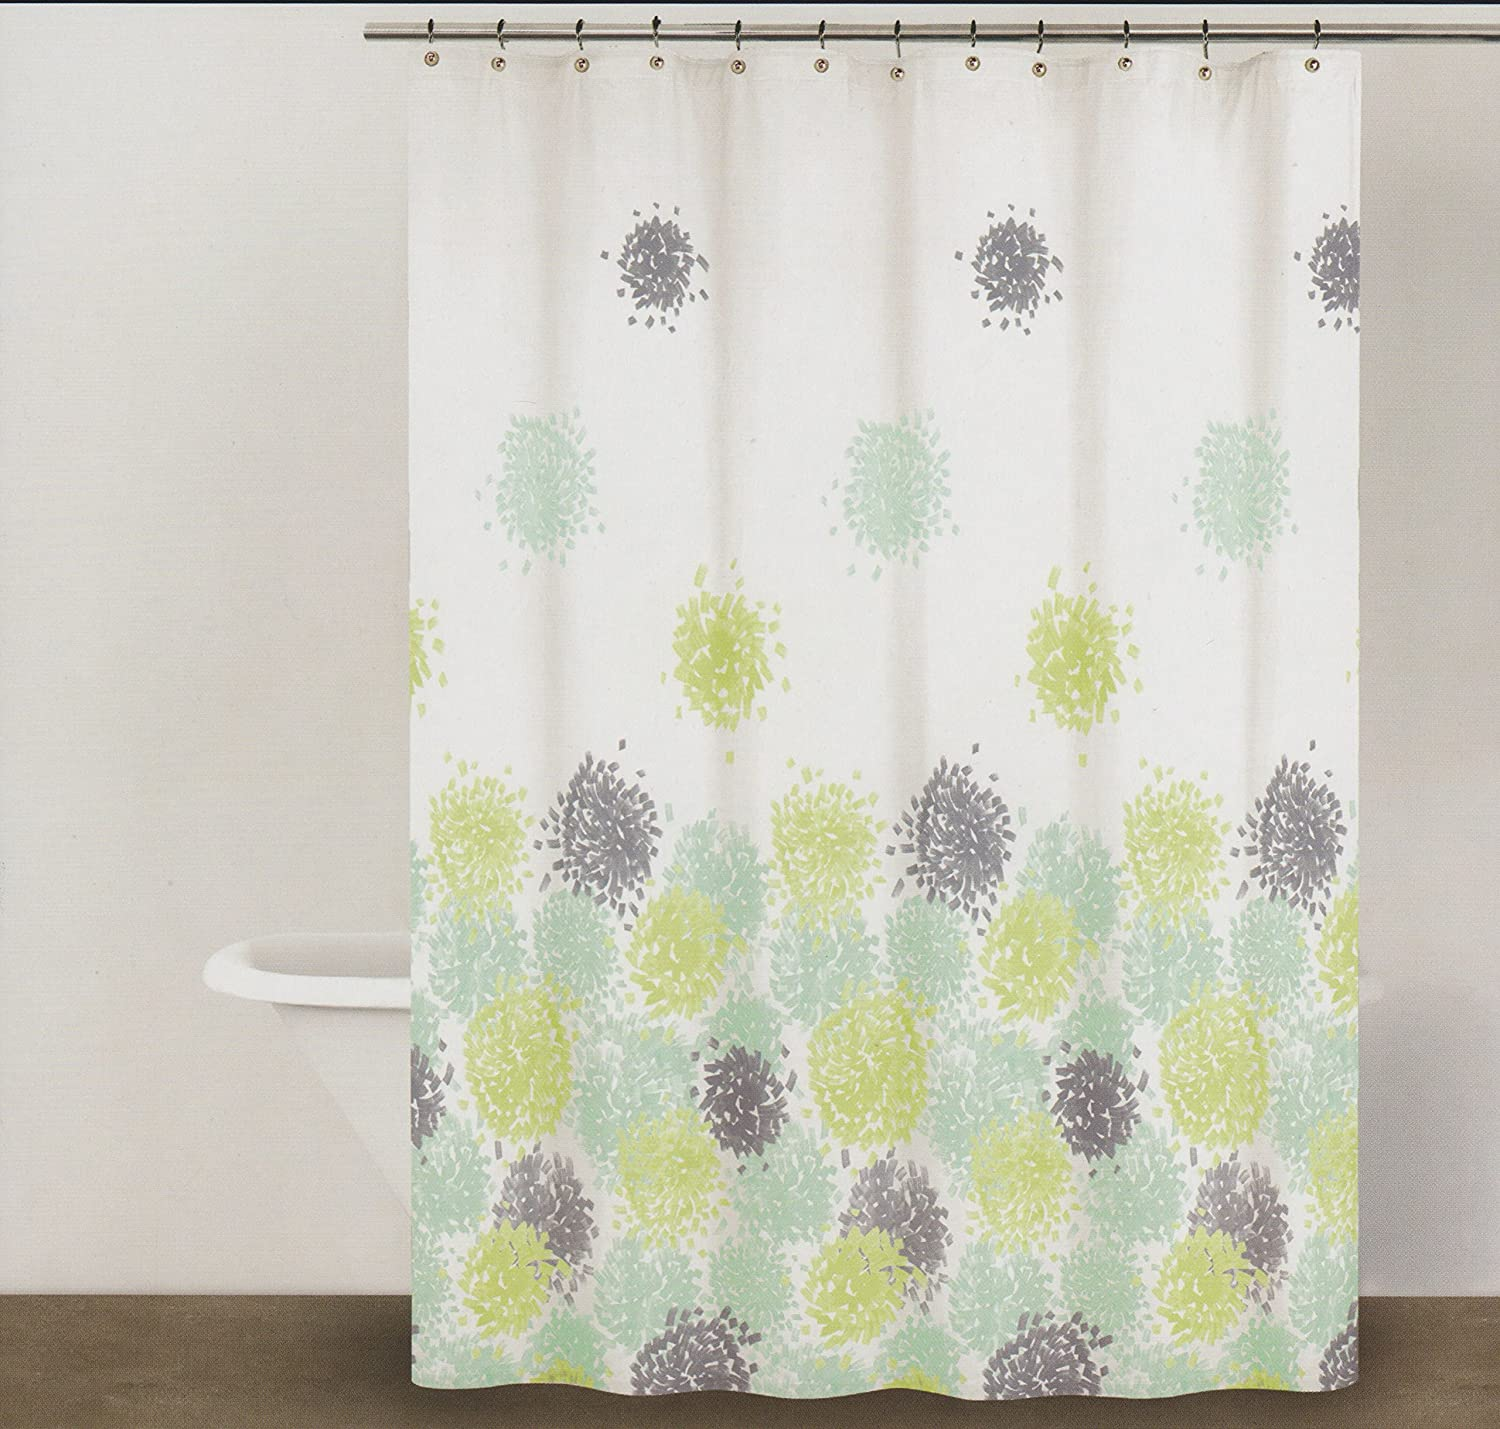 Dkny Bathroom Accessories Amazoncom Dkny Brushstroke Floral 100 Cotton Shower Curtain 72